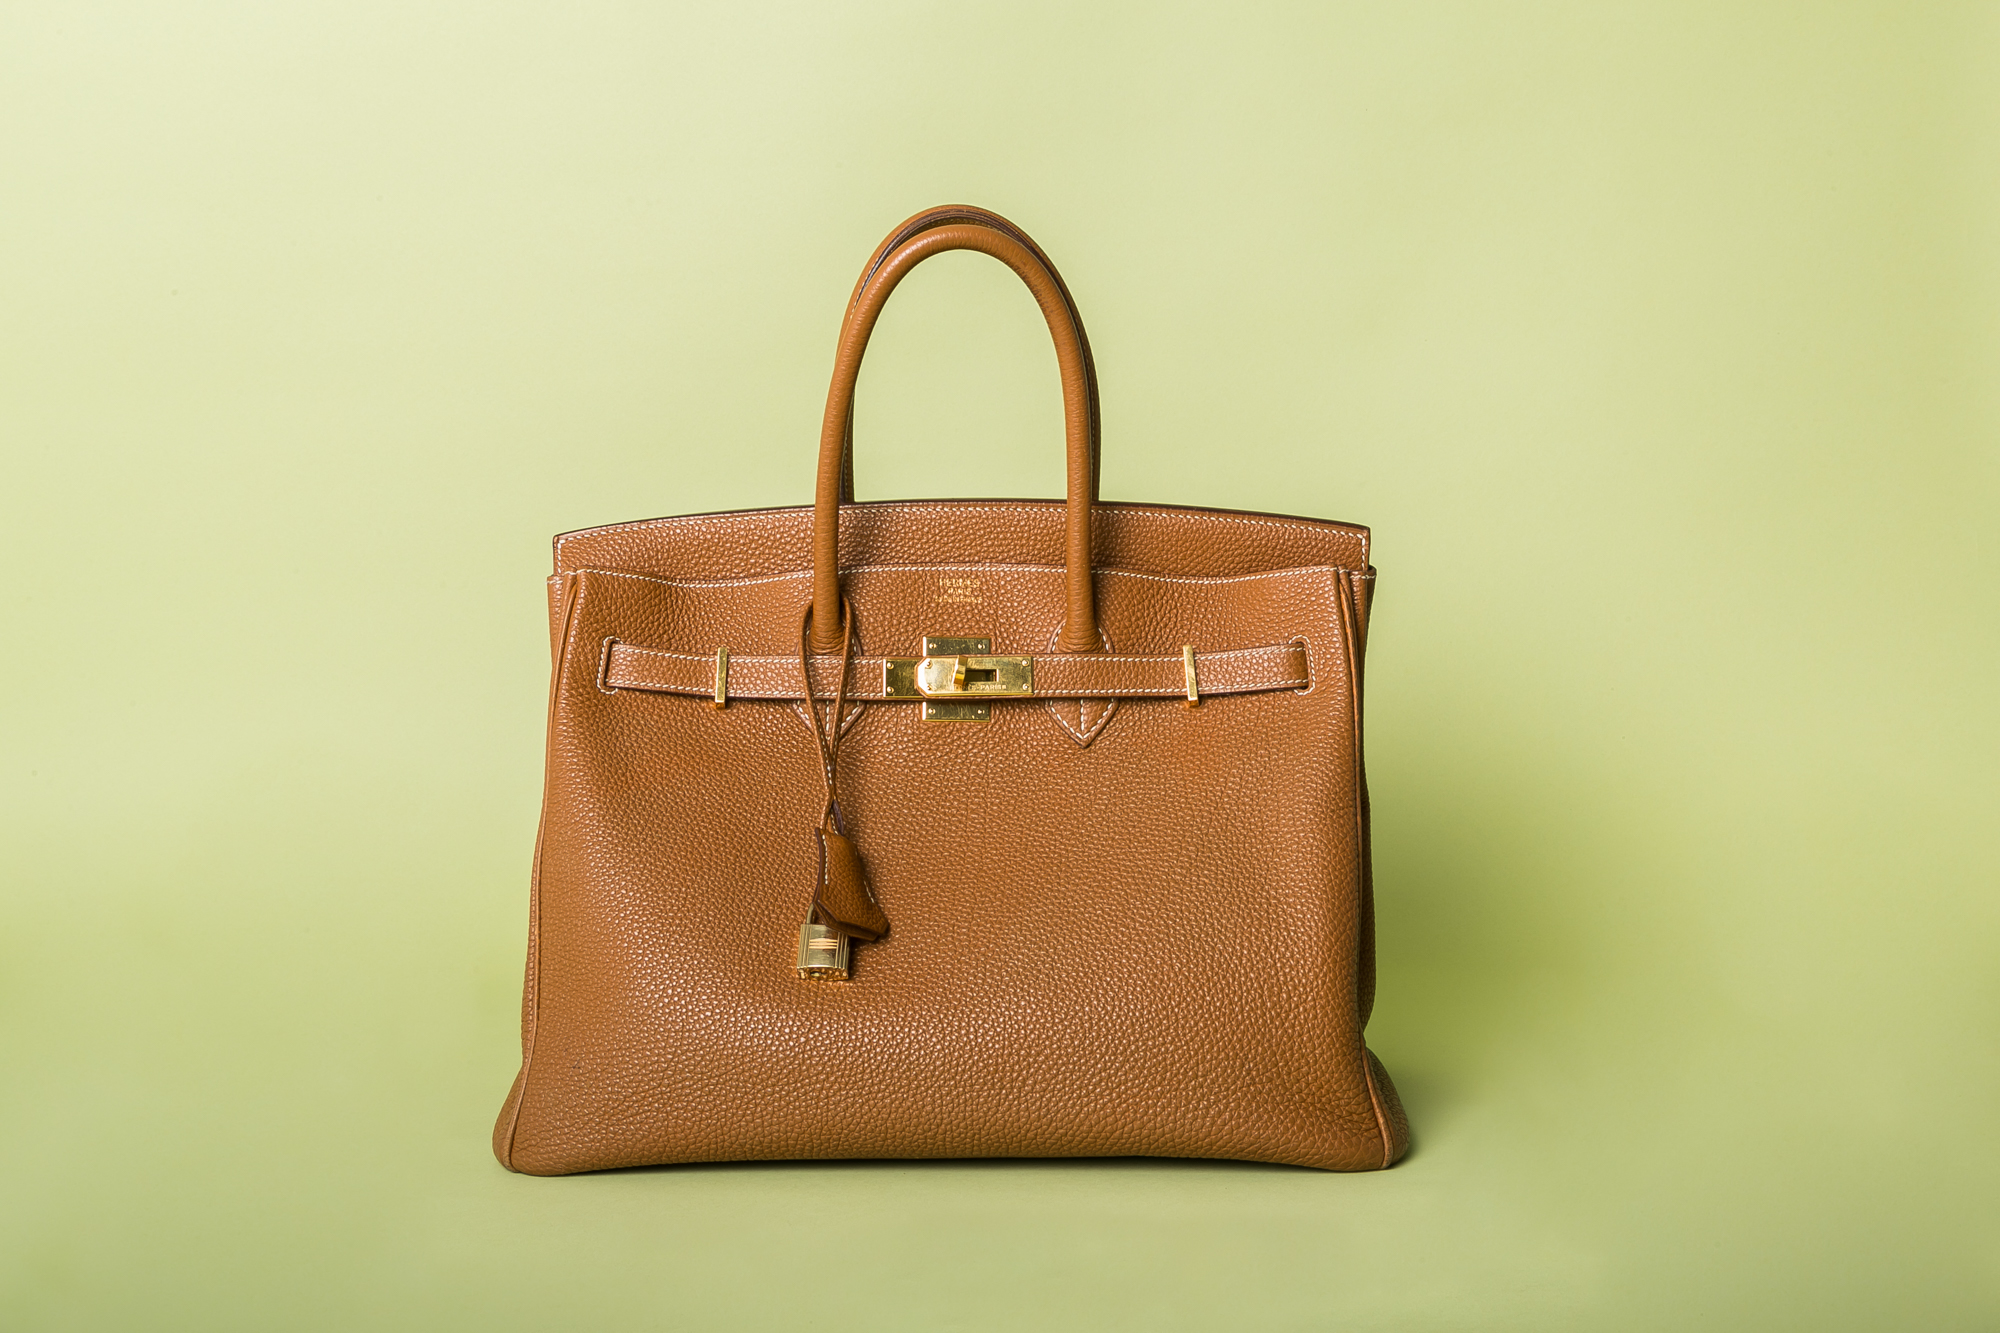 Here s How to Spot the Difference Between Real and Fake Designer Bags -  Racked 6c46d928f2a